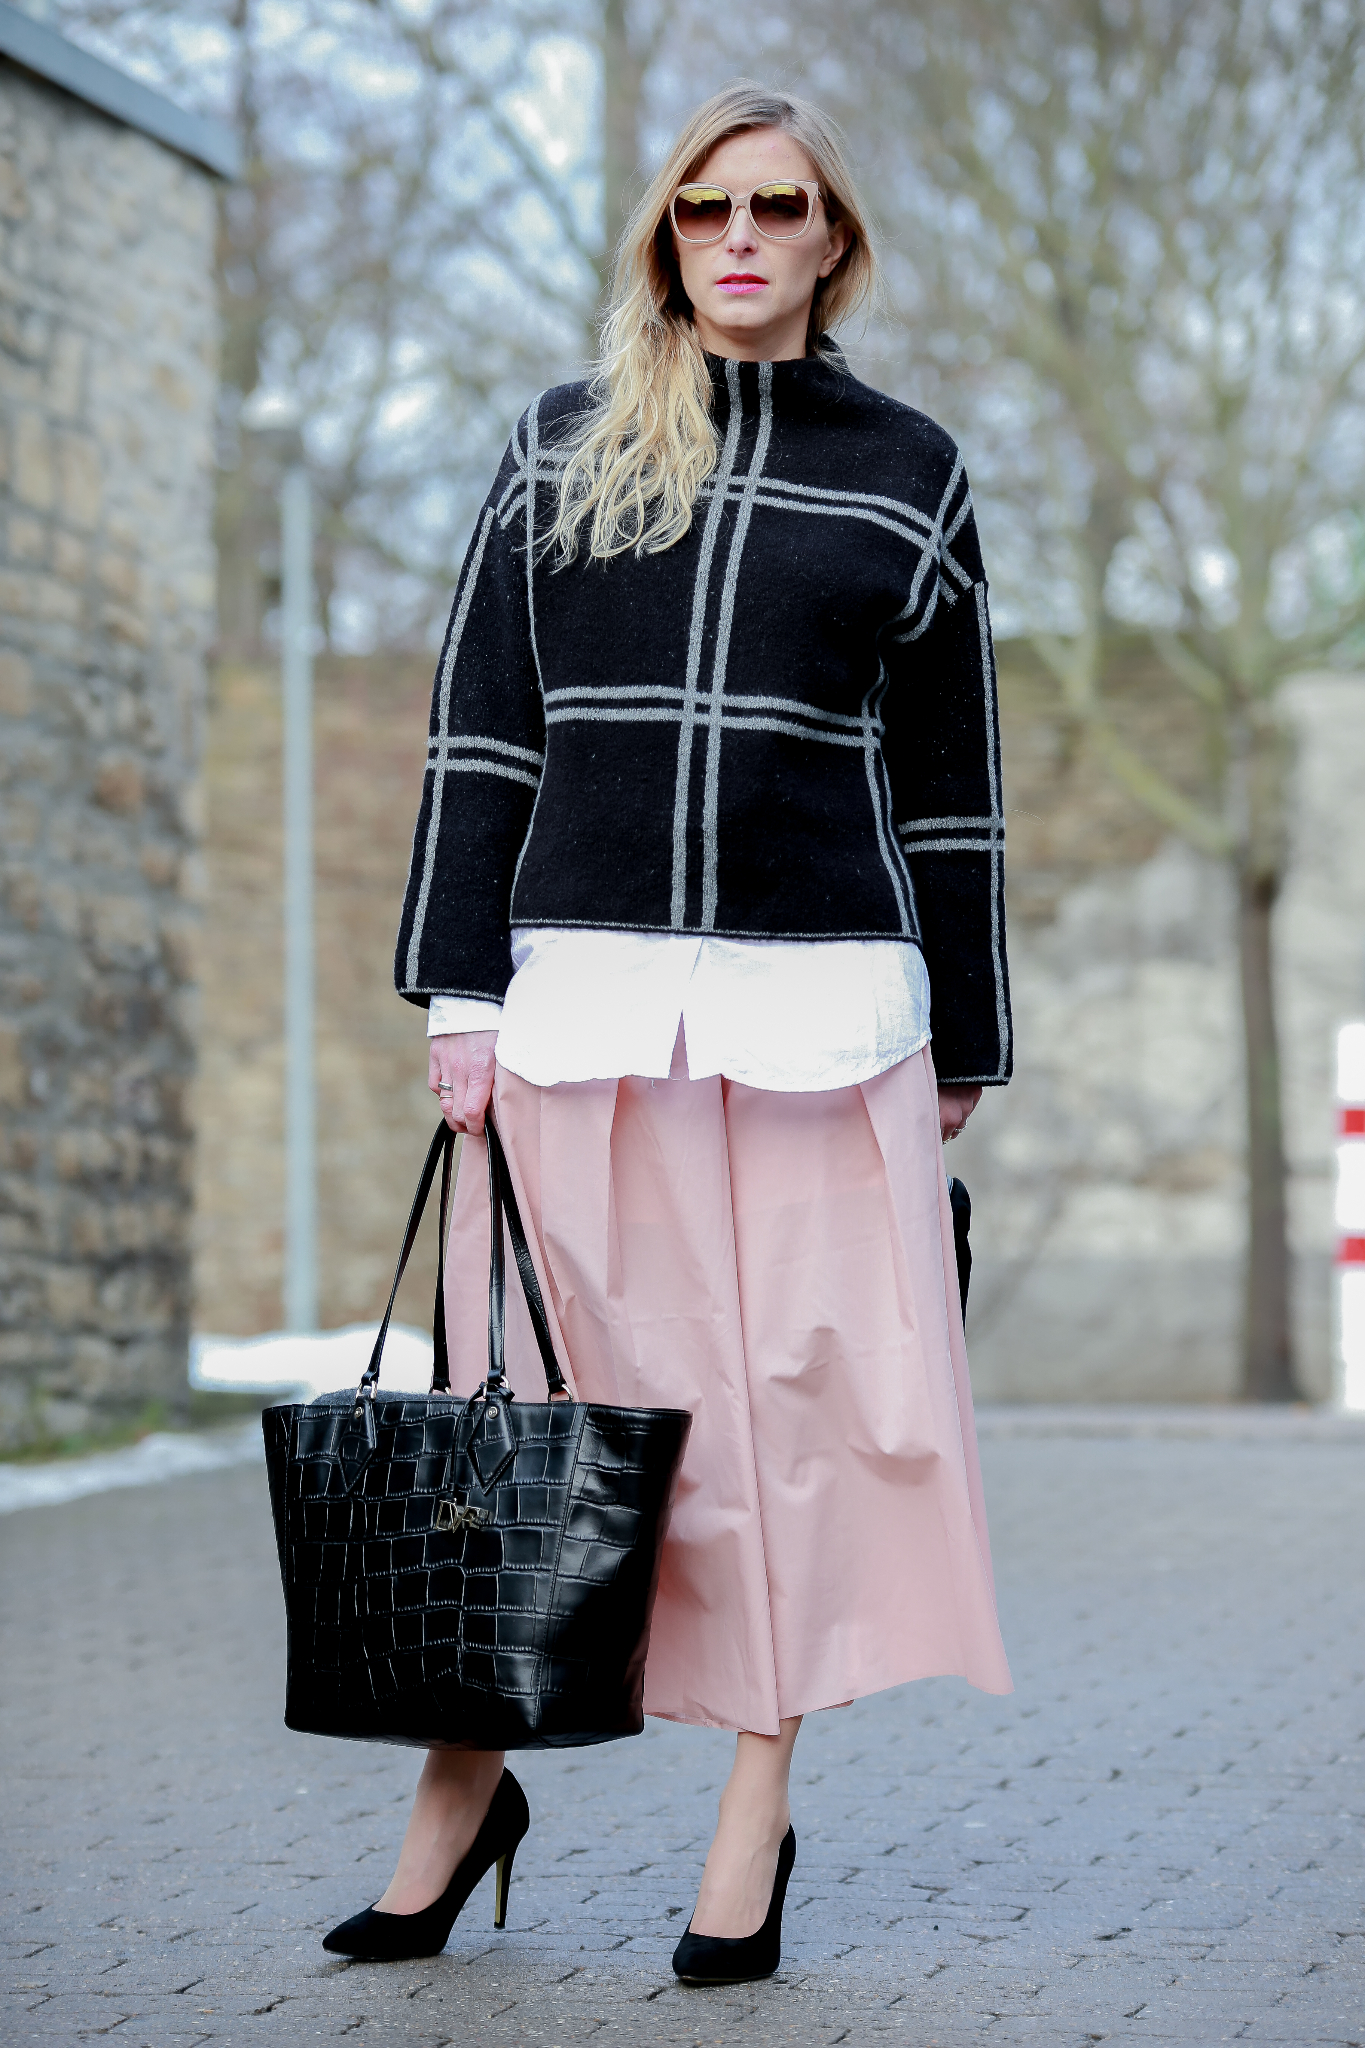 Fashion_Outfit_Pastel_Culotte_Jimmy_Choo-3